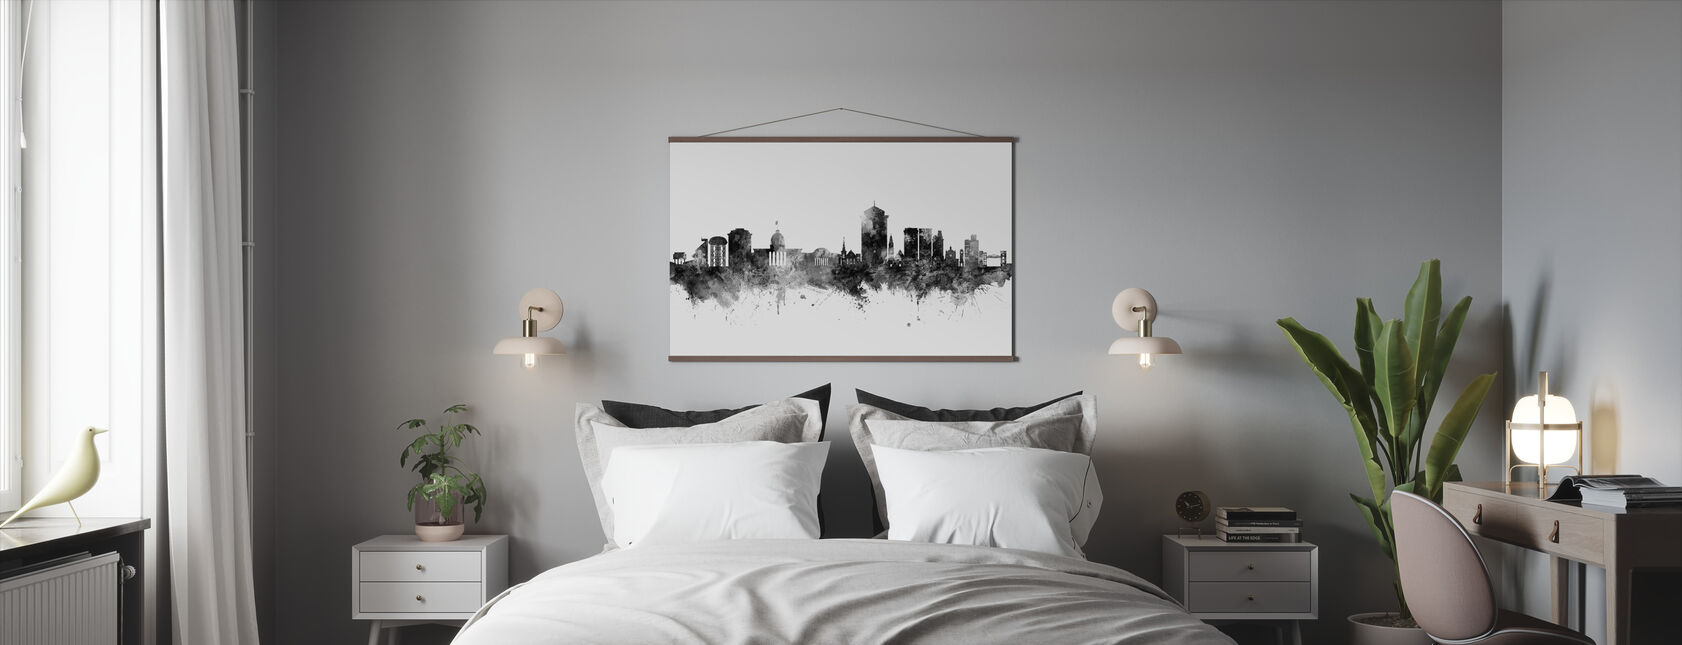 Montgomery Alabama Skyline - Poster - Bedroom